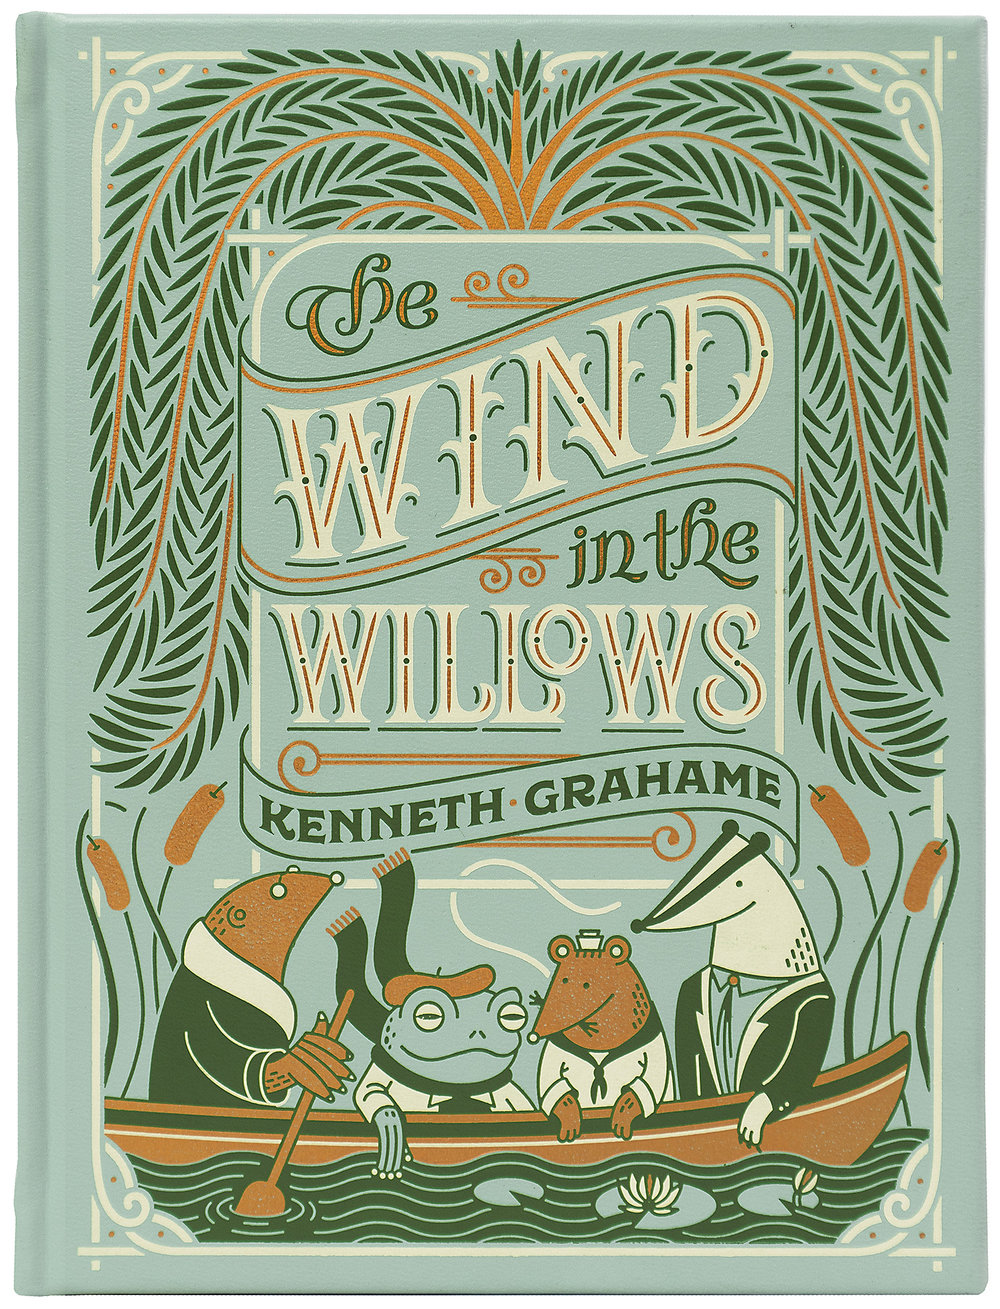 WindIntheWillows_Front.jpg